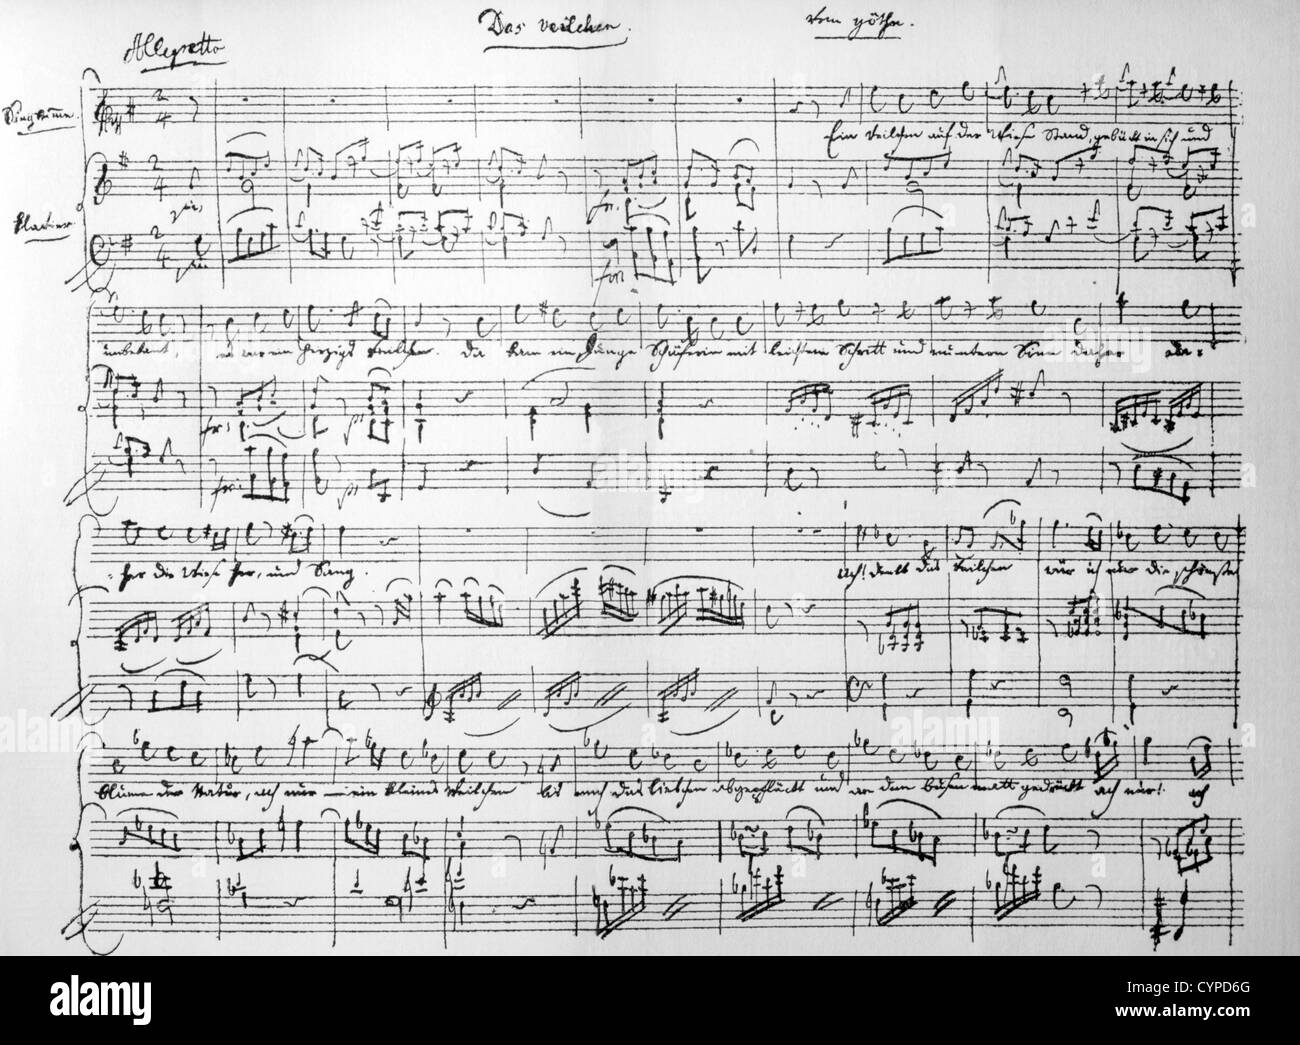 Musical Manuscript by Wolfgang Amadeus Mozart, Music for Goethe's The  Violet Stock Photo - Alamy